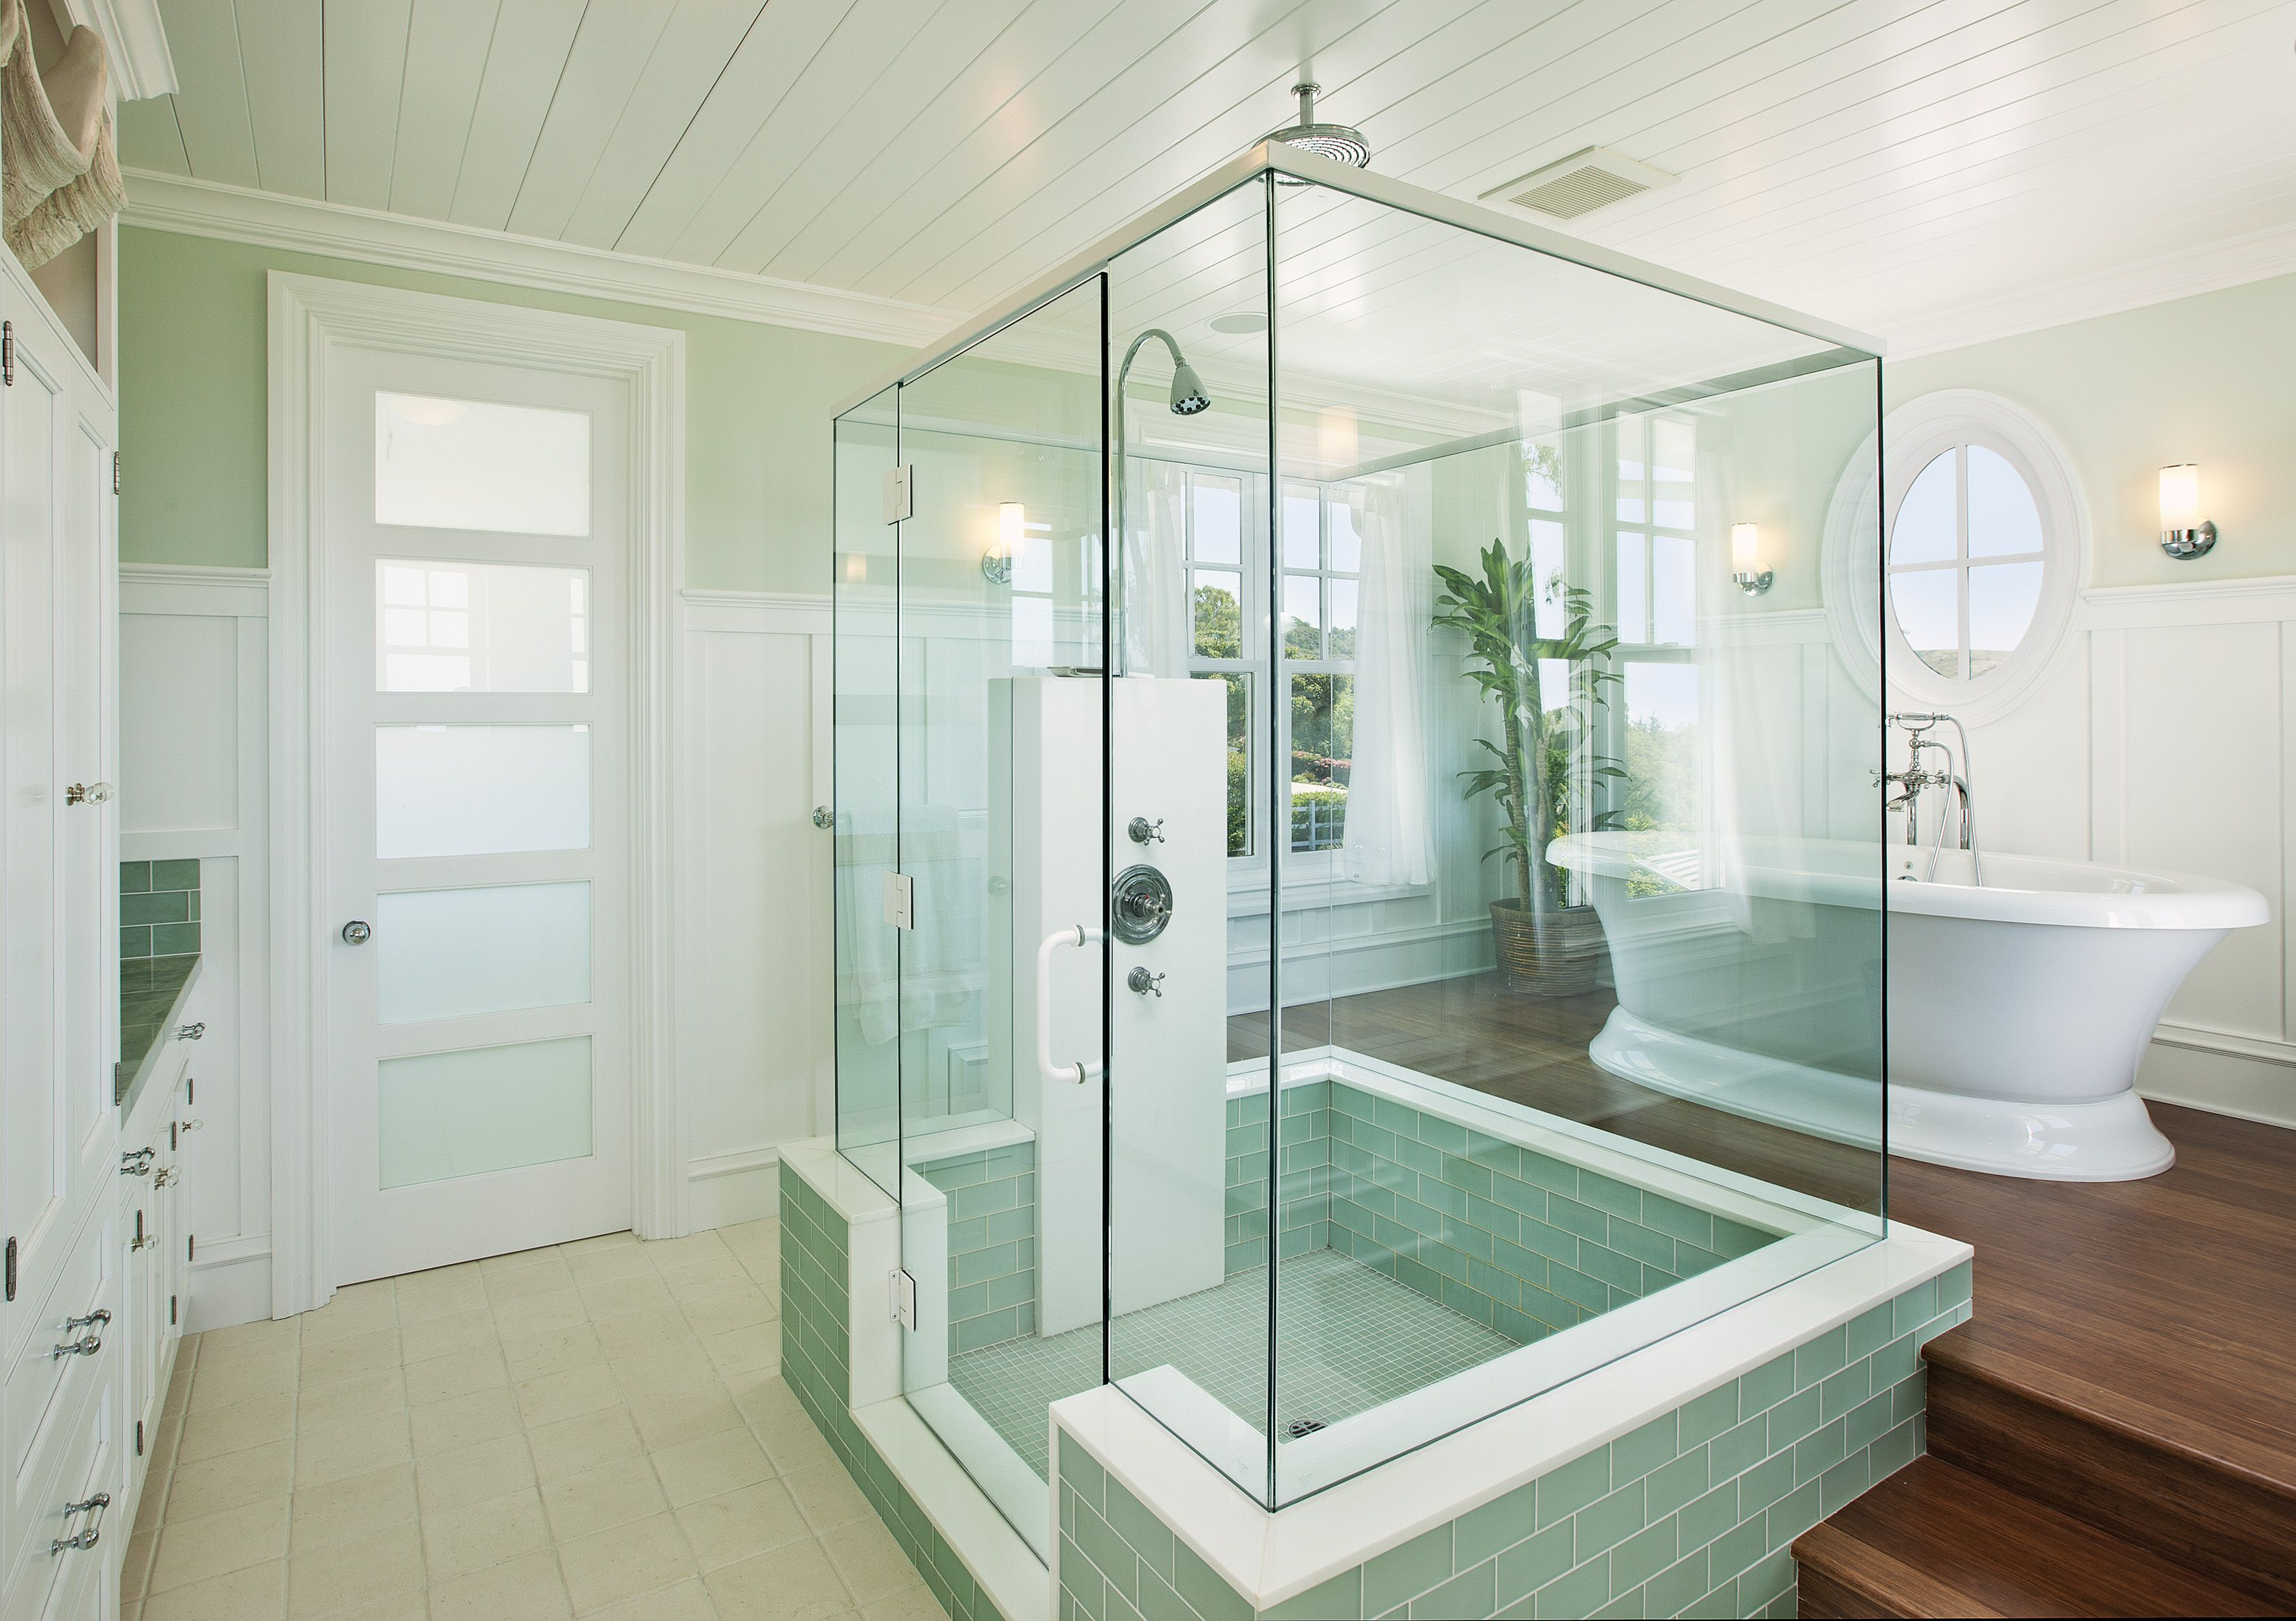 Sunlight From All Angles In This Glass Enclosed Shower With